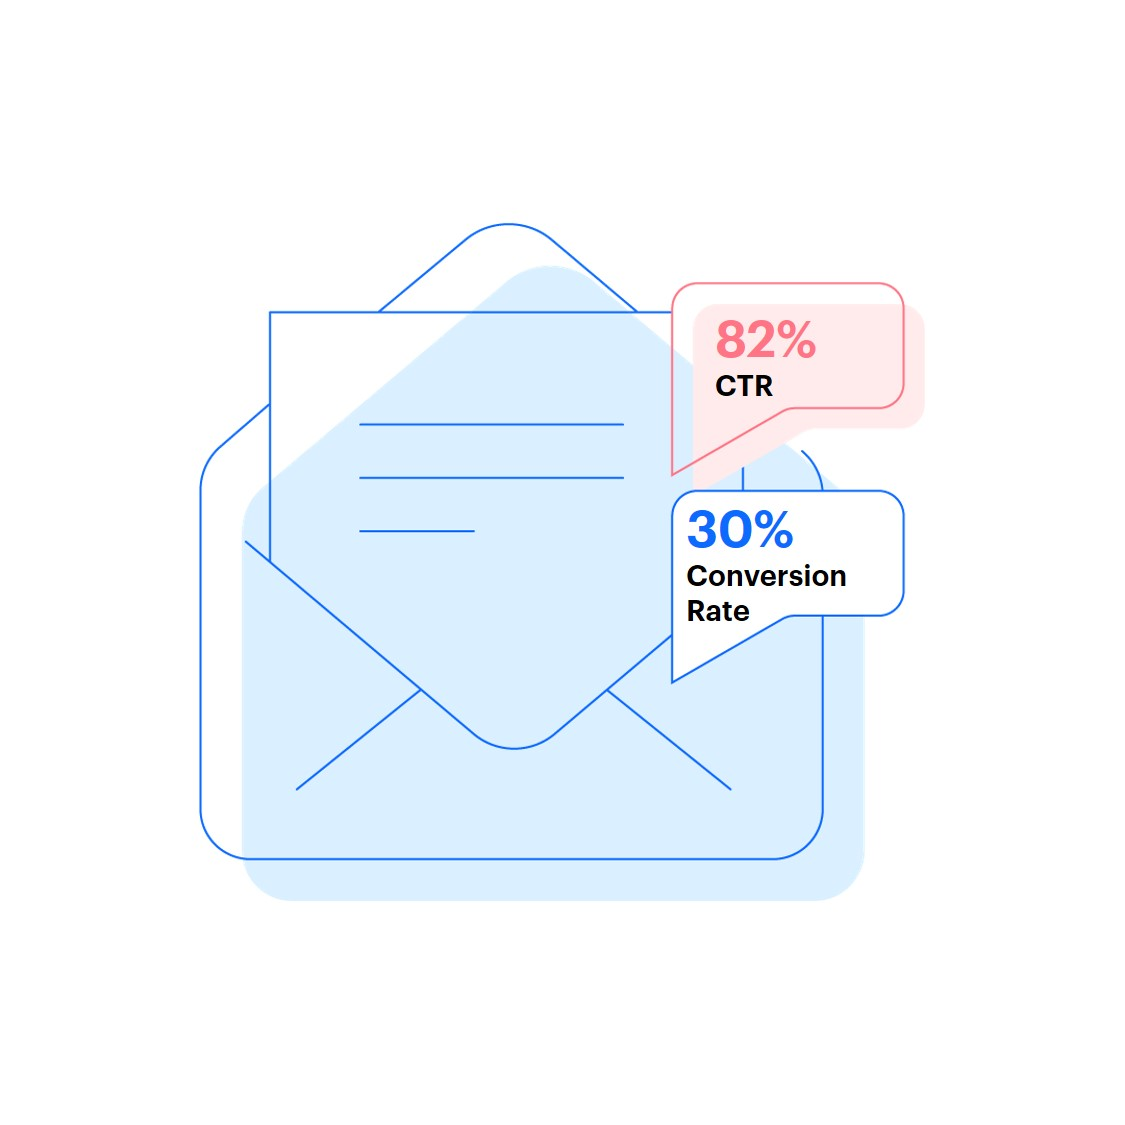 Email with example CTR and conversion rate